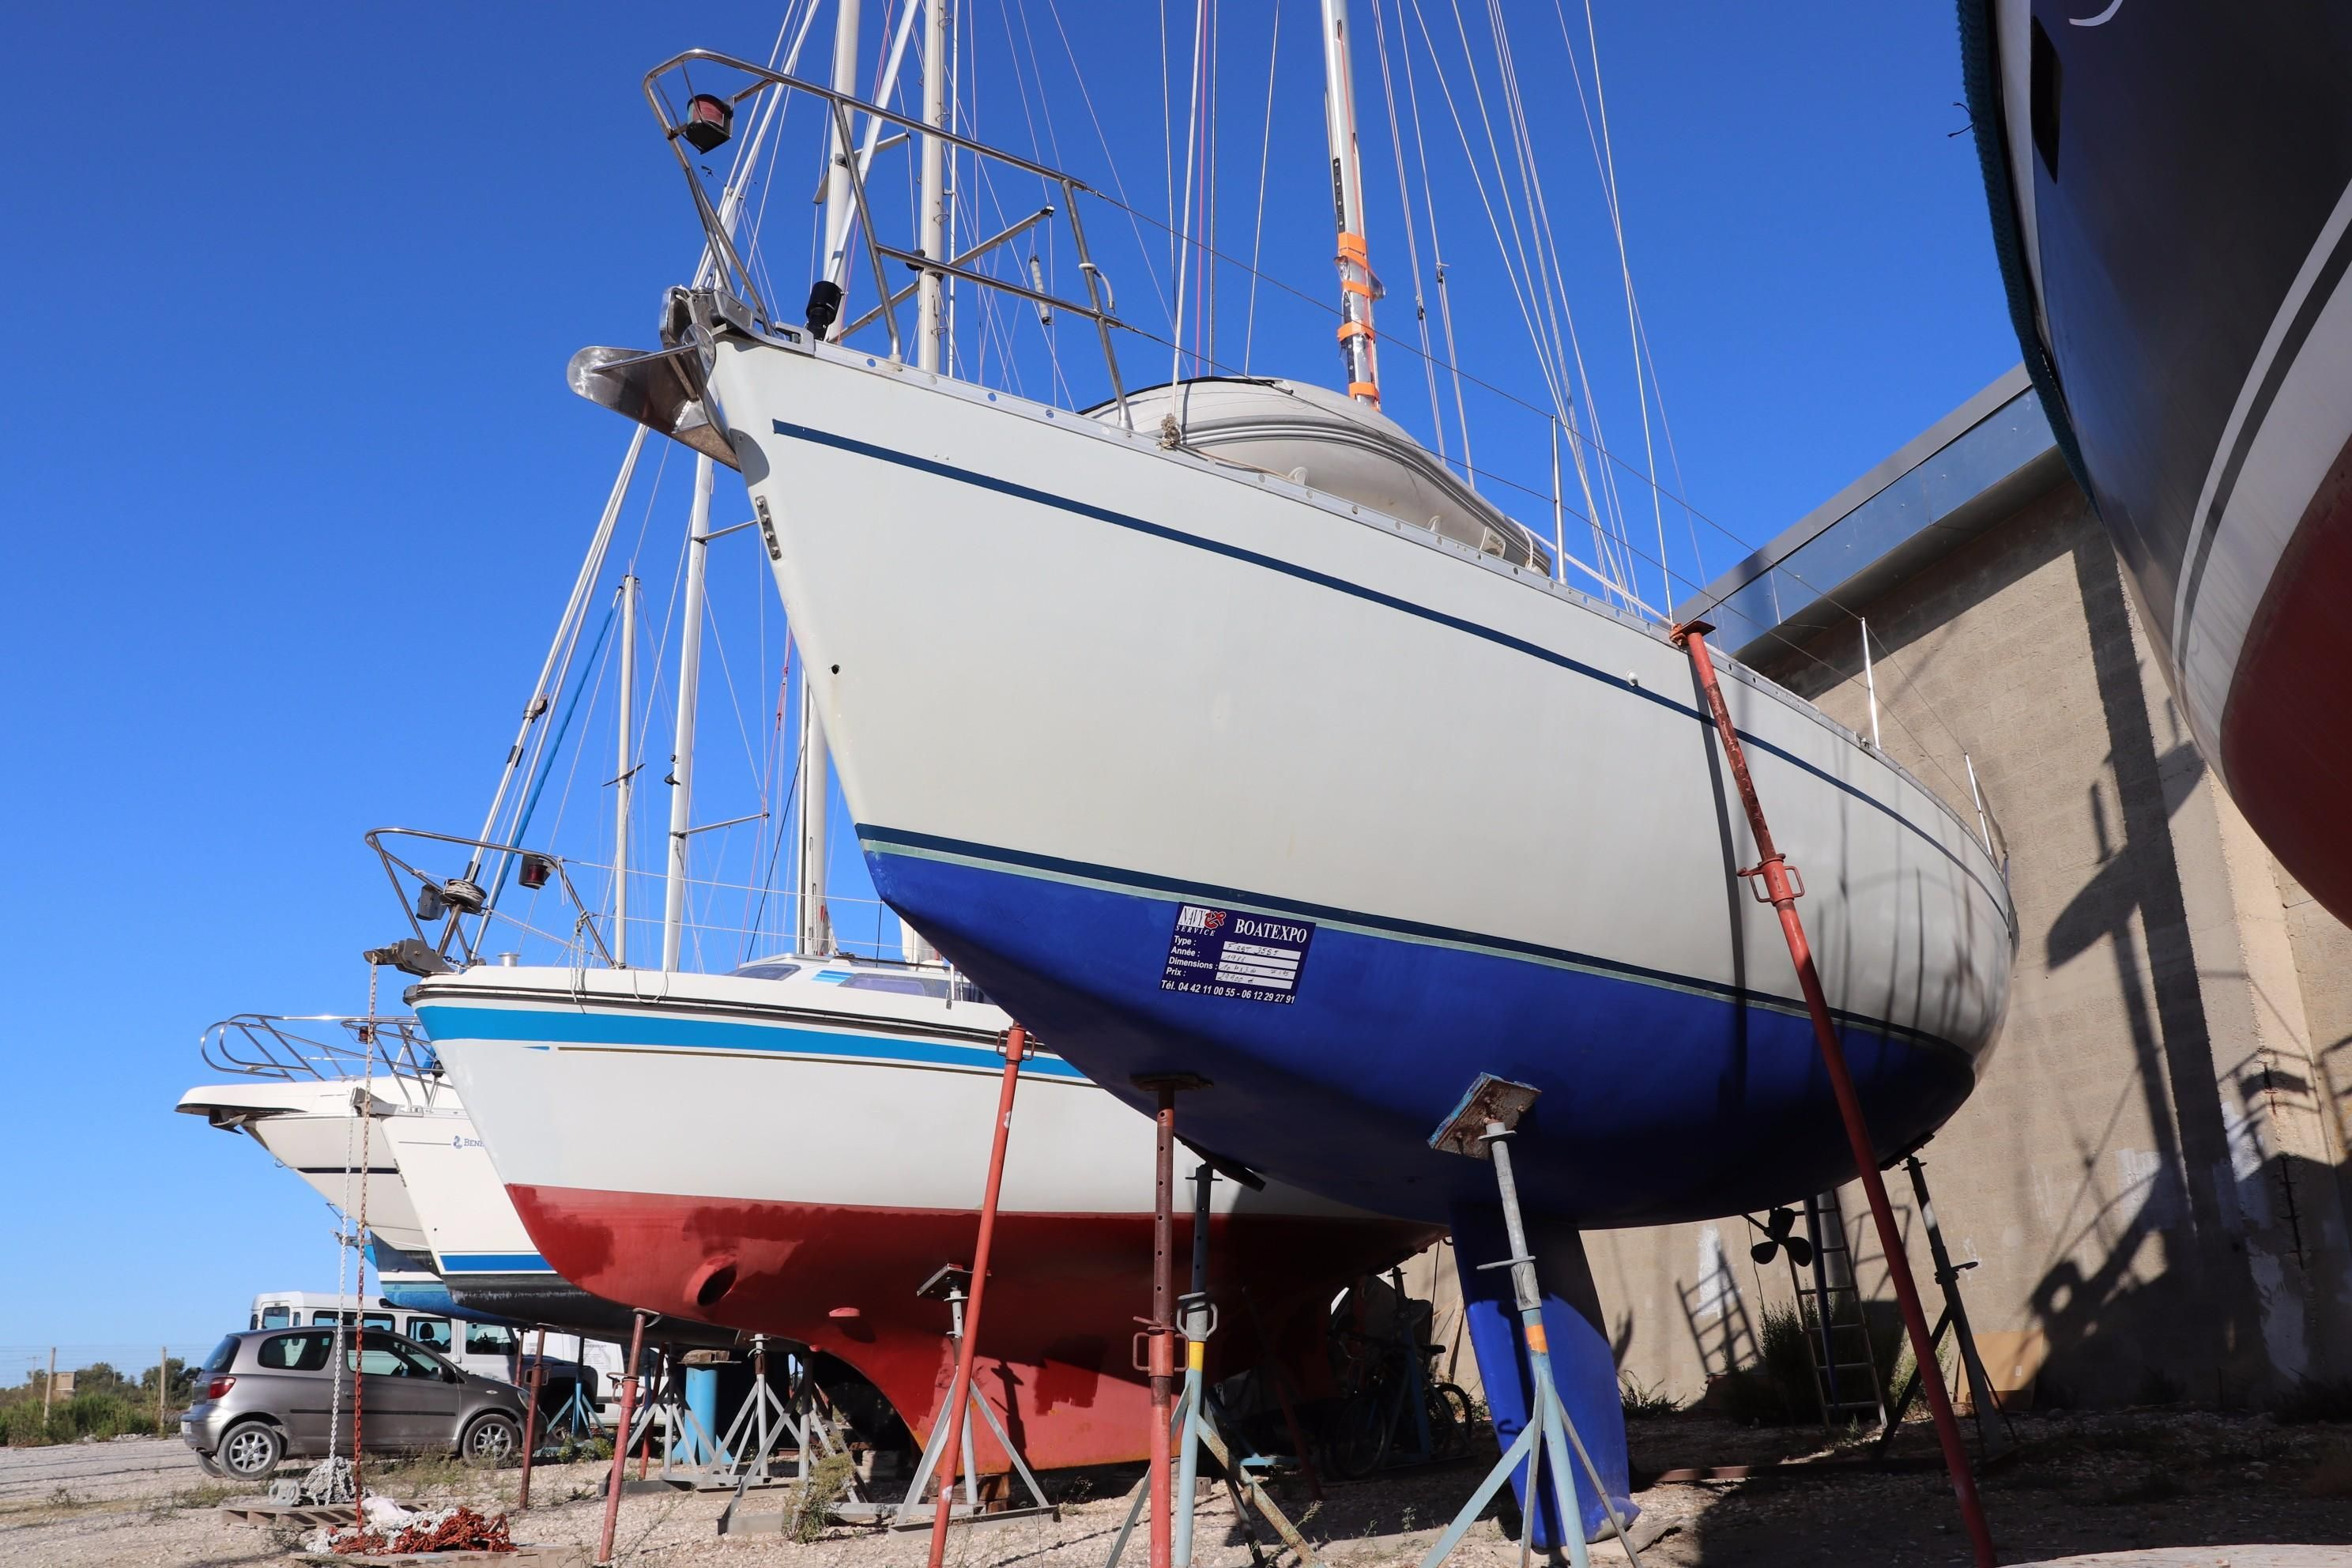 1988 beneteau first 35s5 sail boat for sale - Navy service port st louis du rhone ...